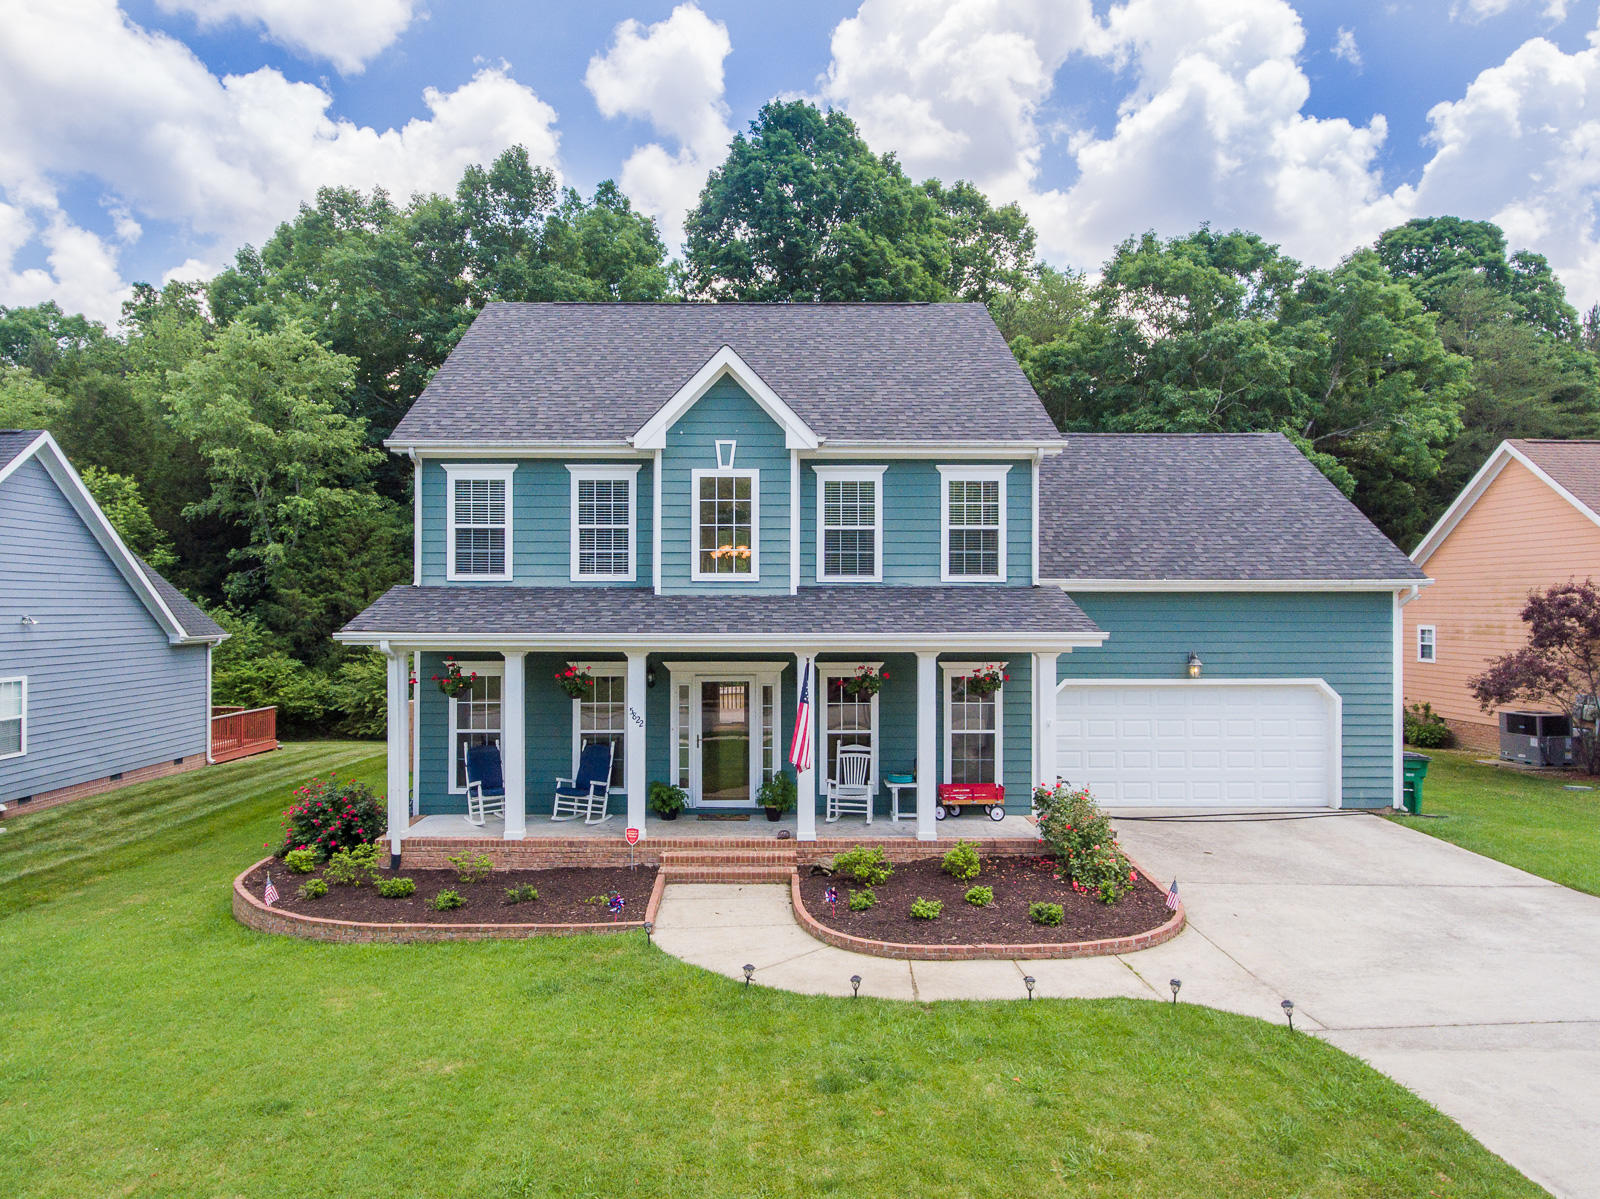 5822 Crooked Creek Dr, Ooltewah, TN 37363